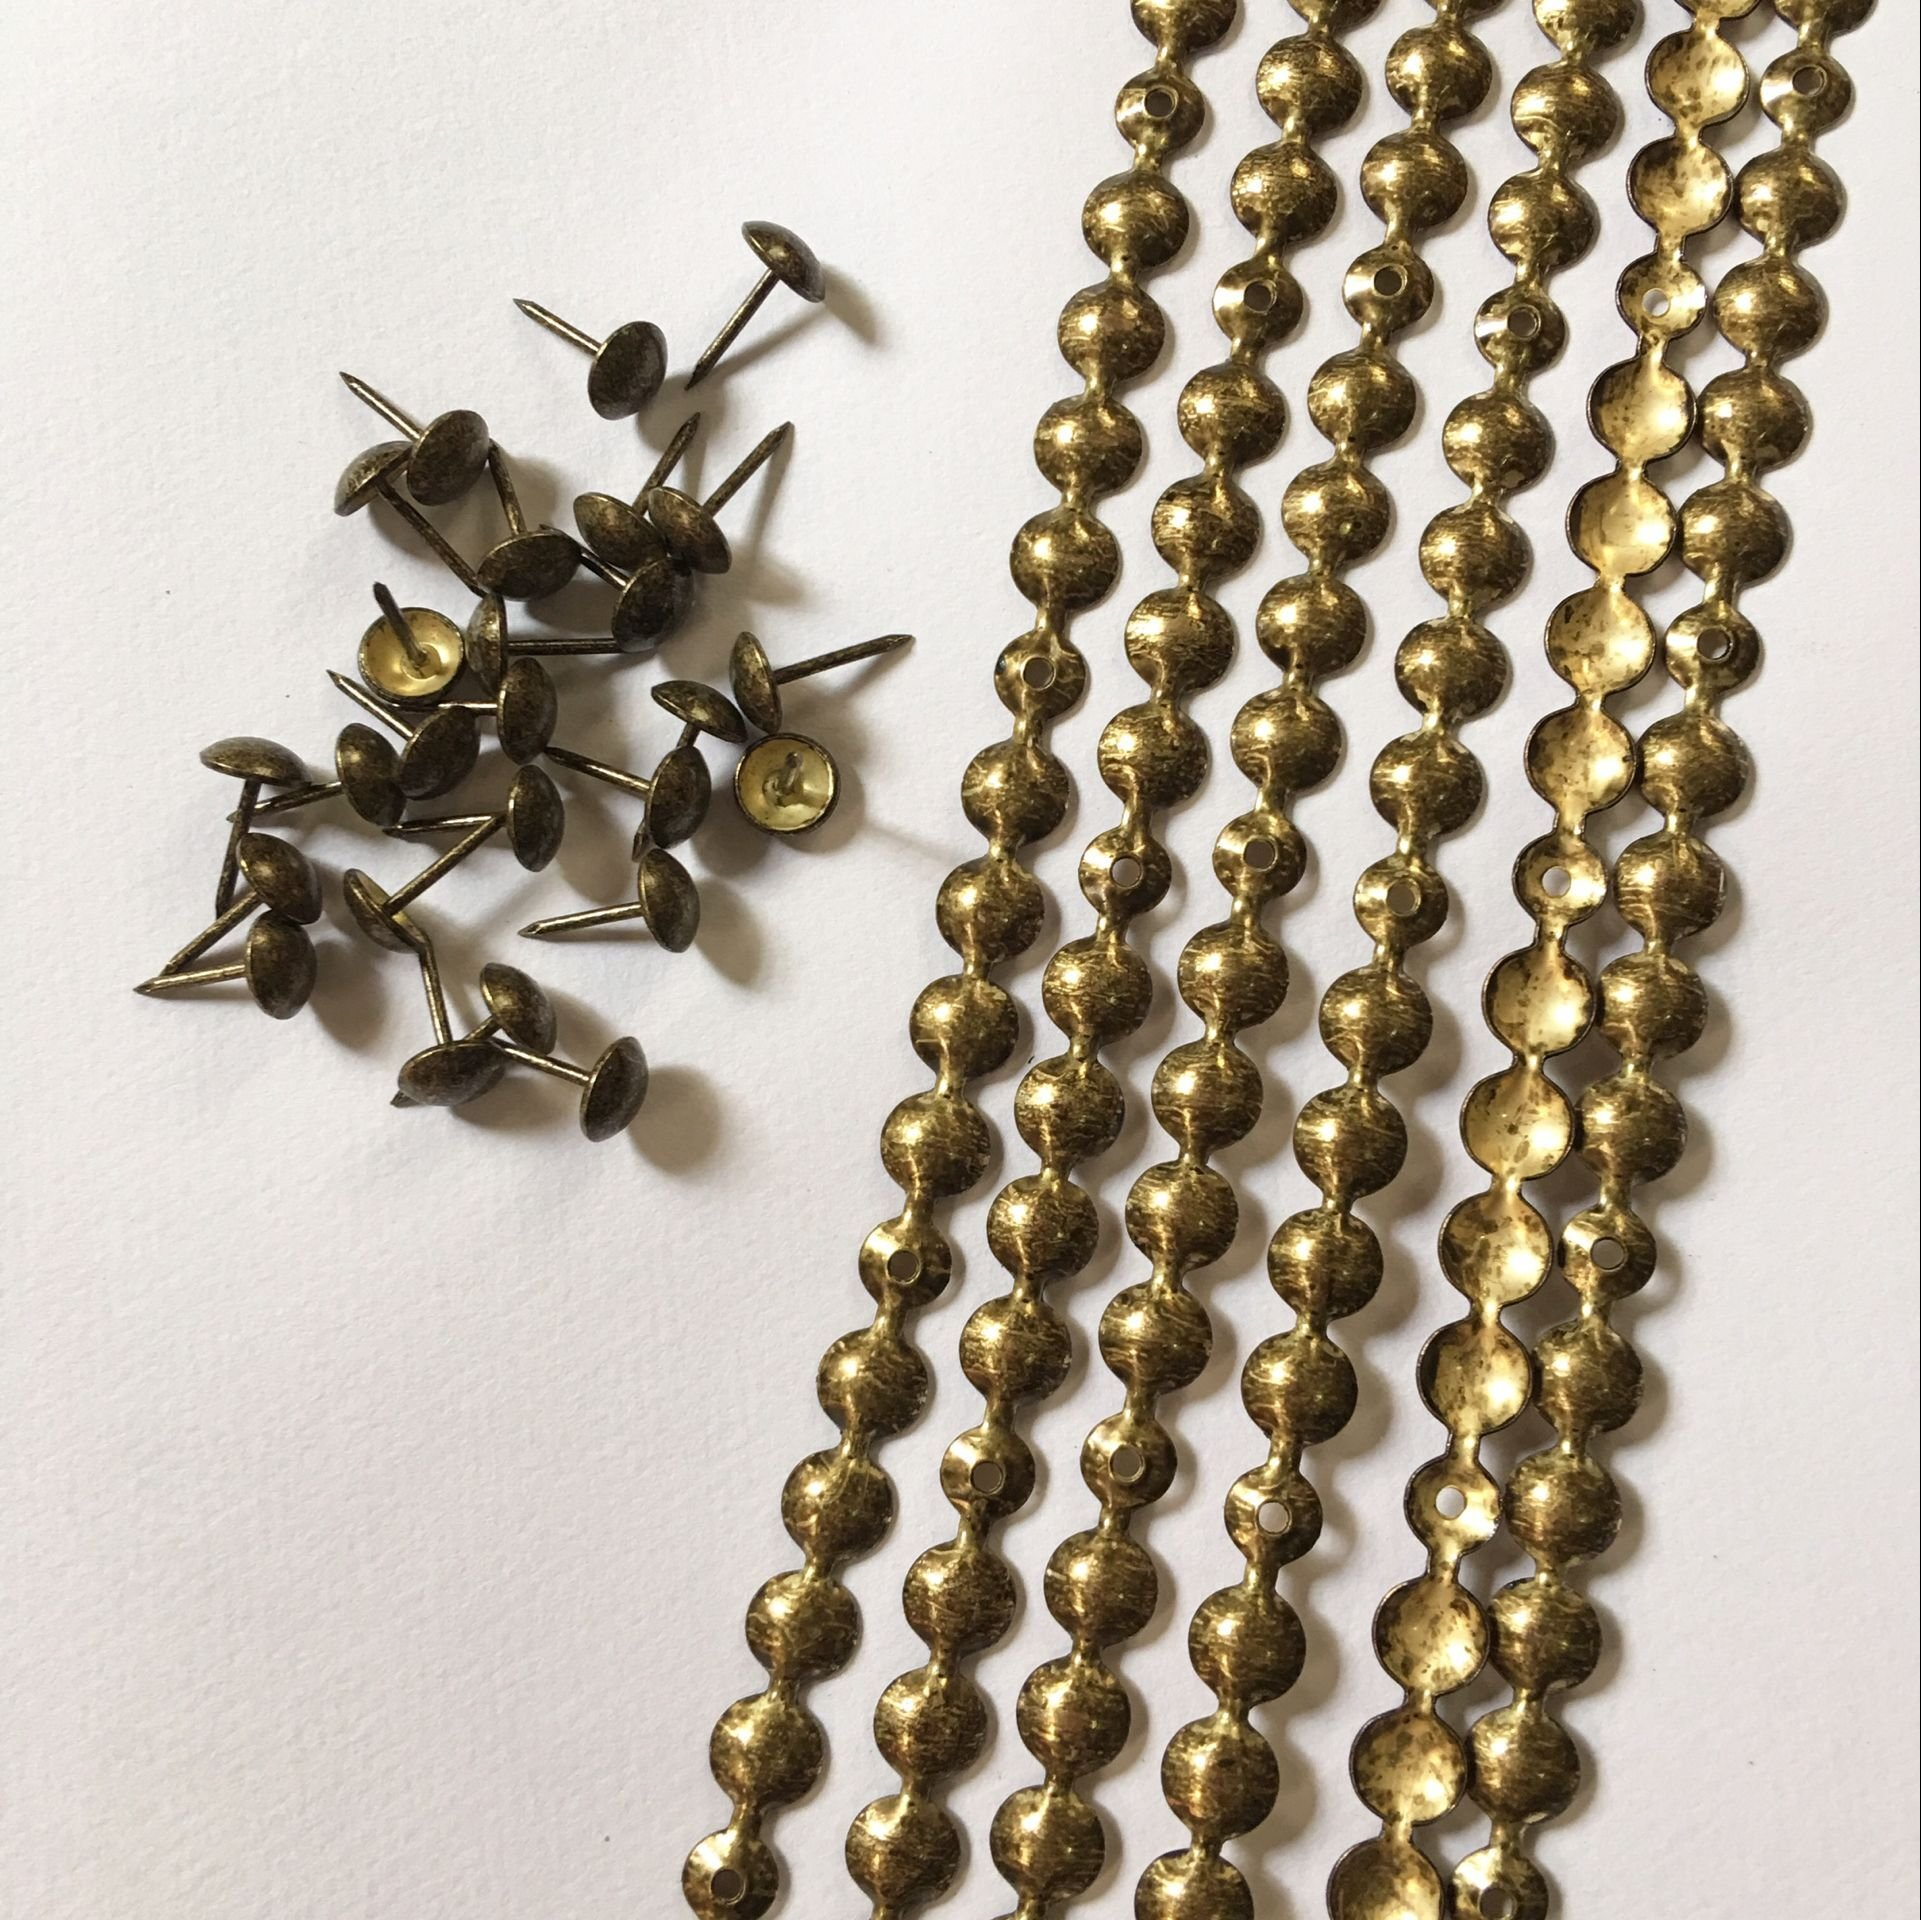 10 meters a lot: 9.5mm/11mm Nickel/Brass/Bronze Plated Decorative Nail Strips/Nailing Tapes,Sofa Tacks,Upholstery Tacks,DIY Furniture Accessory (D:9.5mm antique)